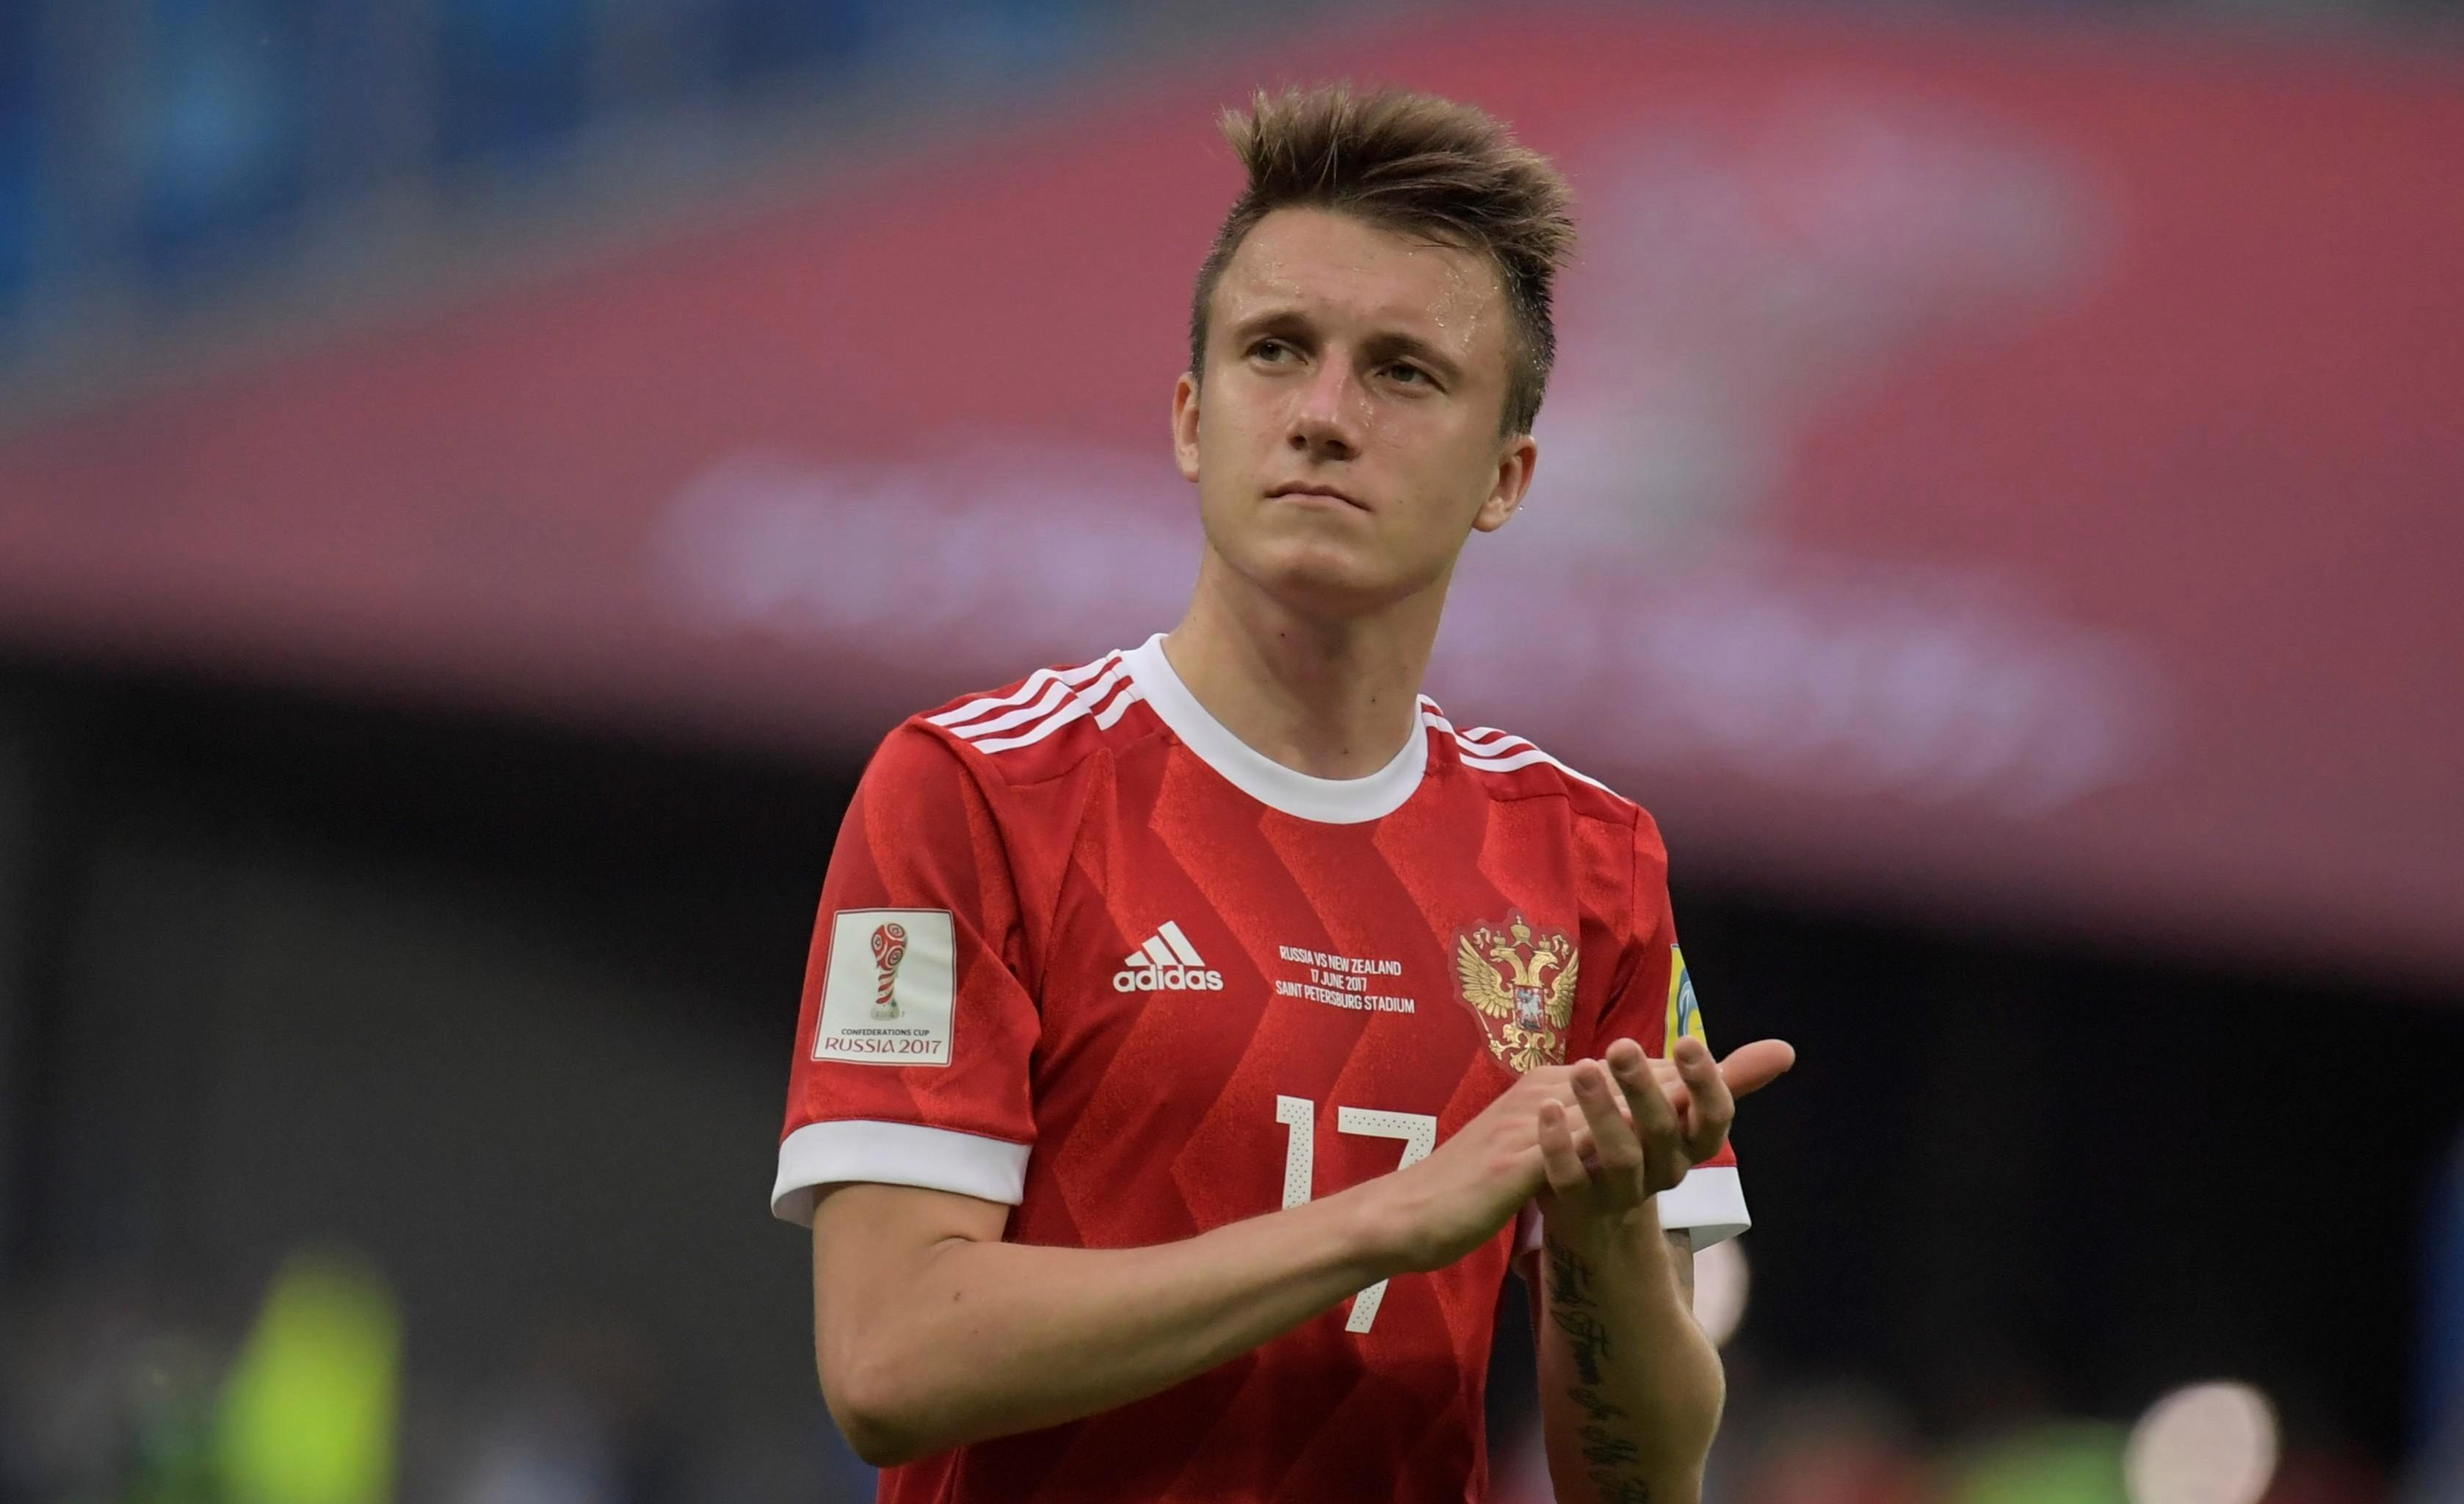 Russian World Cup hopes could rest on the shoulders of Aleksandr Golovin